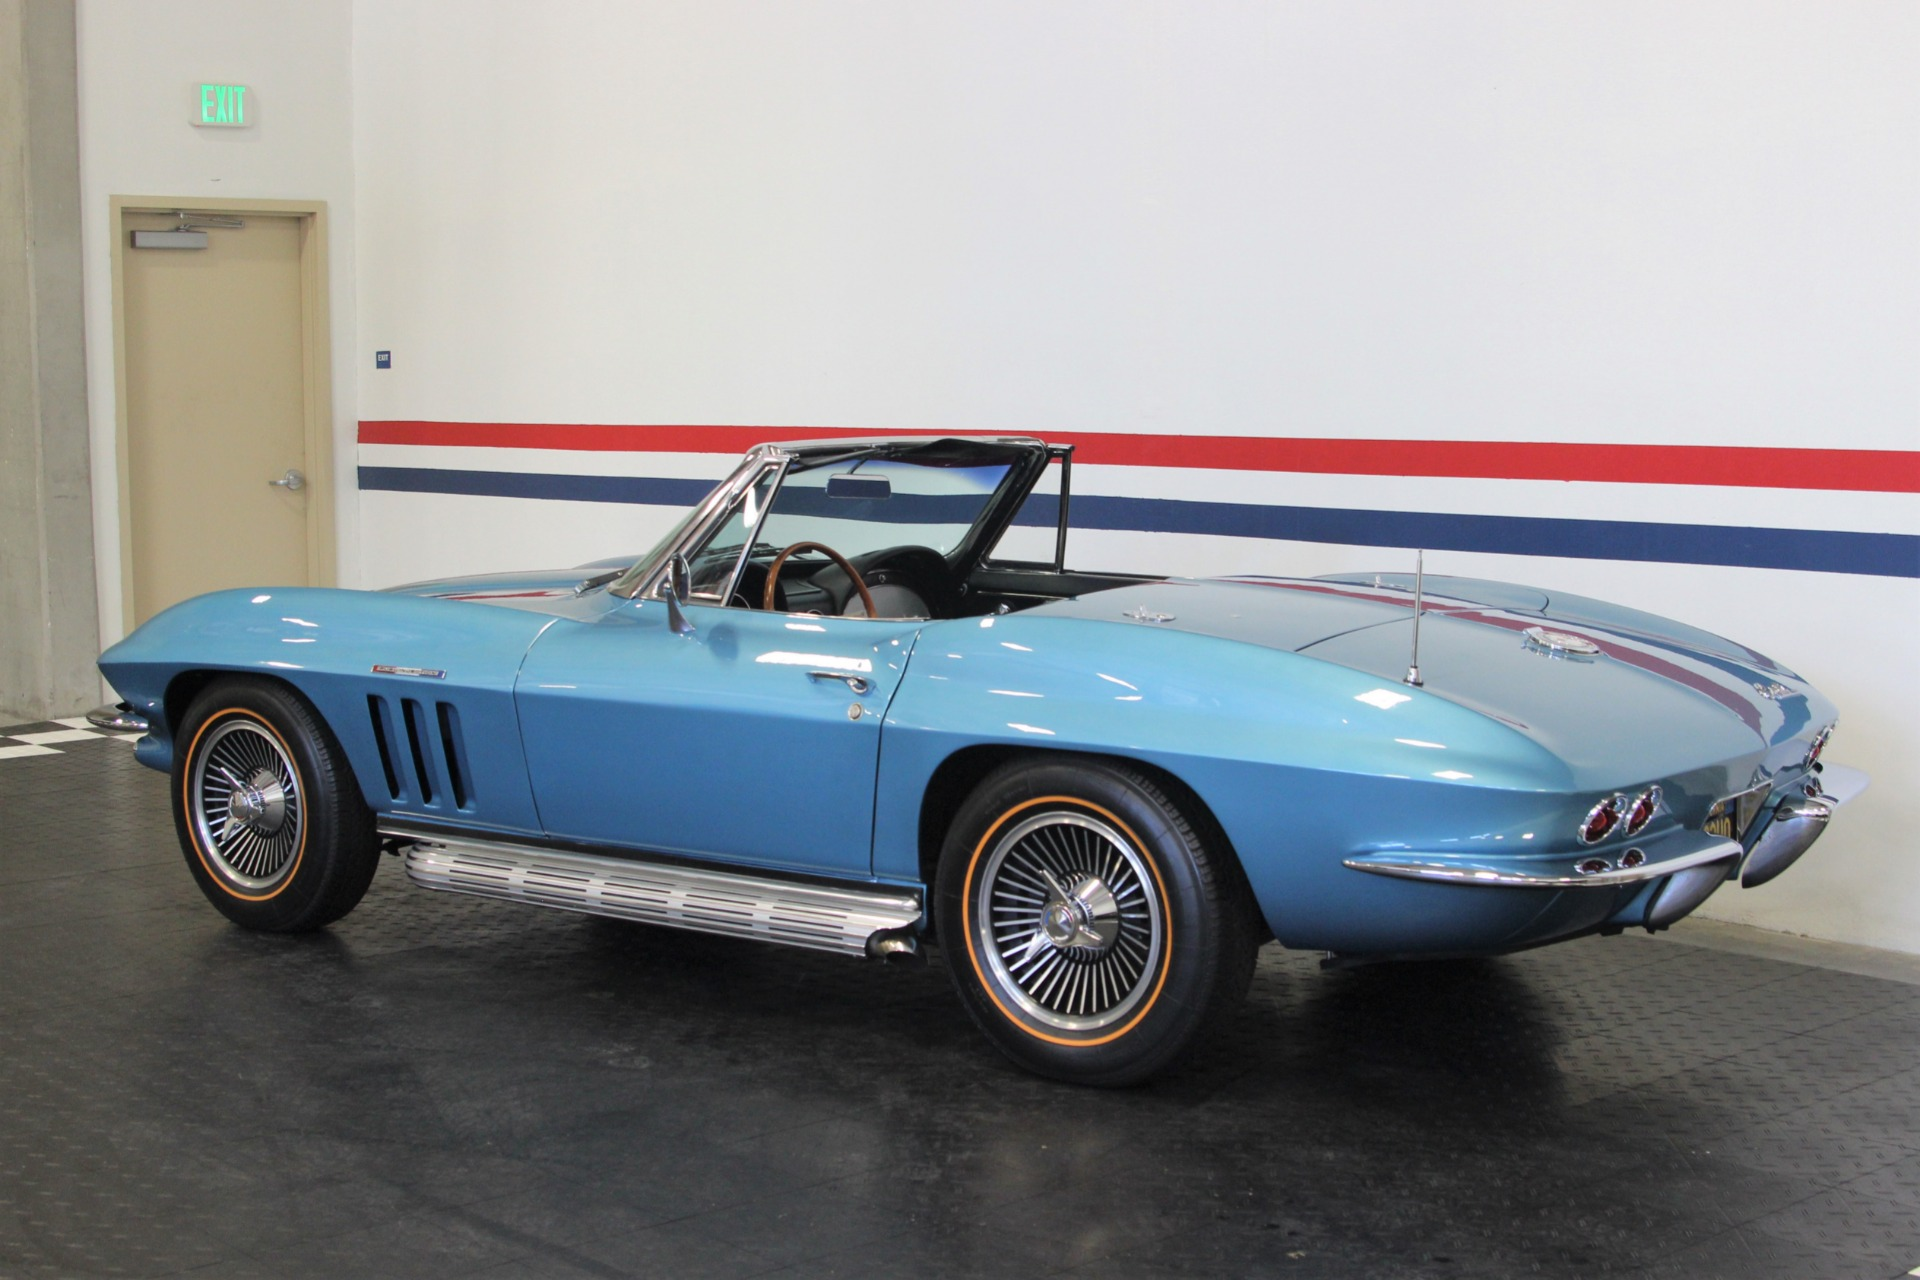 Used-1965-Chevrolet-Corvette-Fuel-Injected